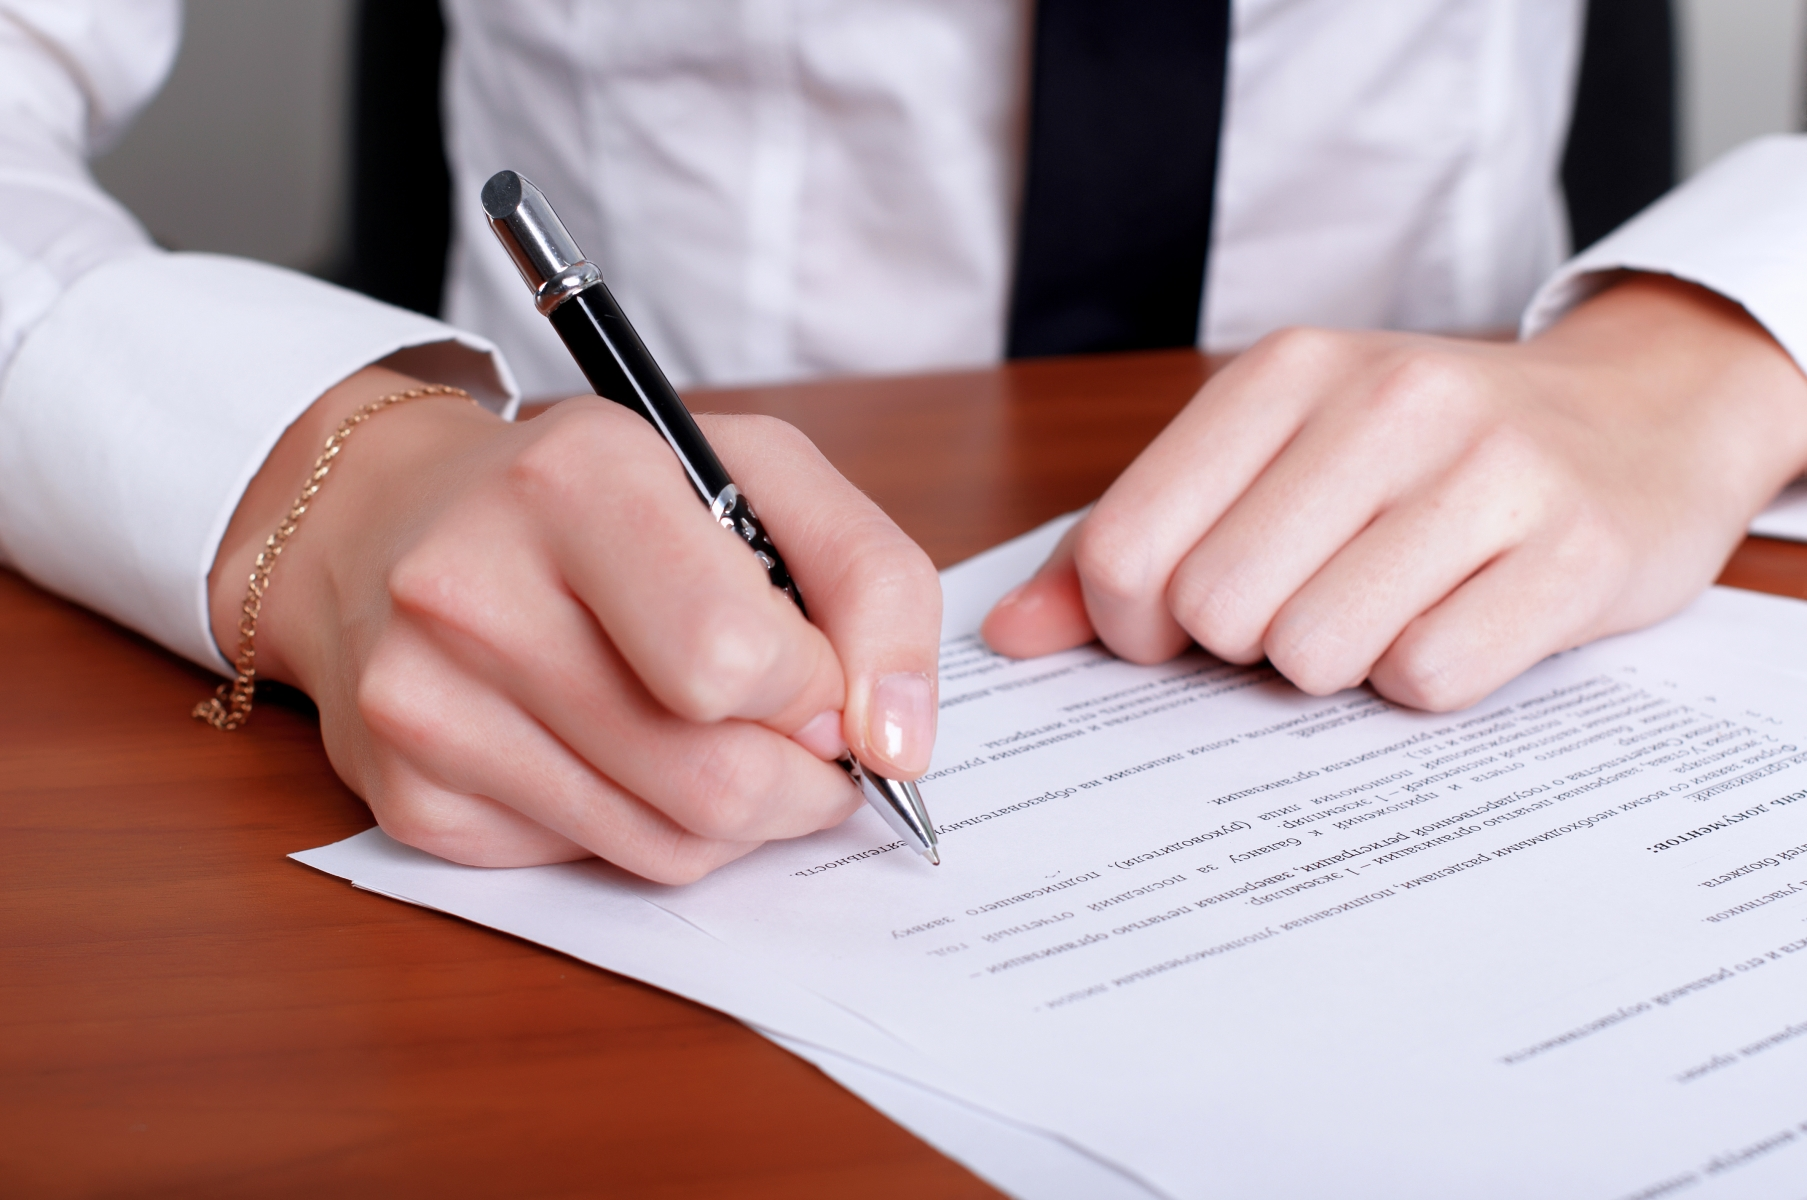 1047509-person-s-hand-signing-document.jpg